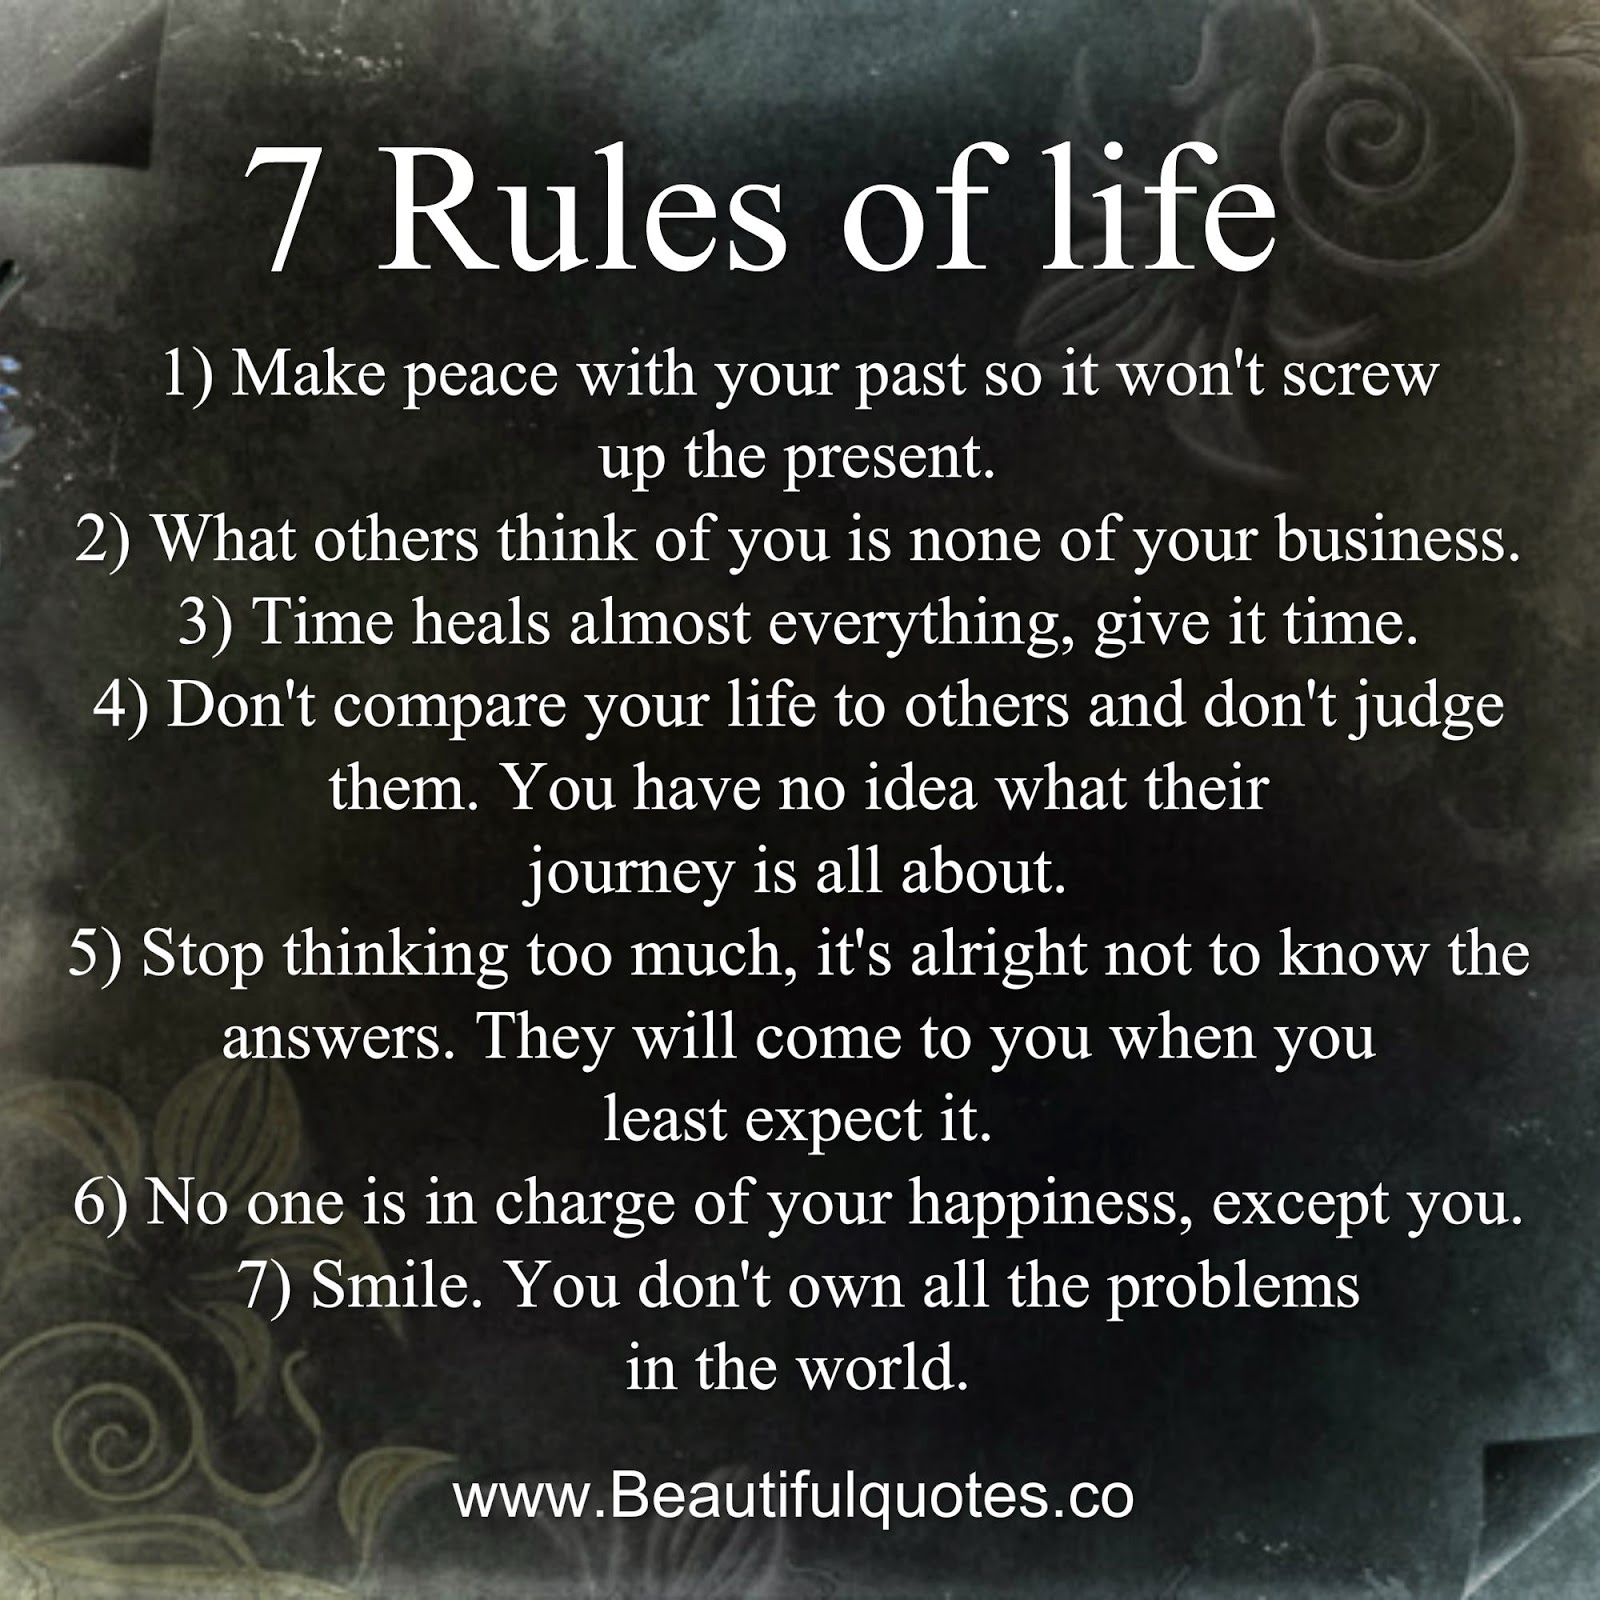 7 Rules Of Life Quote Stunning Beautiful Quotes 7 Rules Of Life